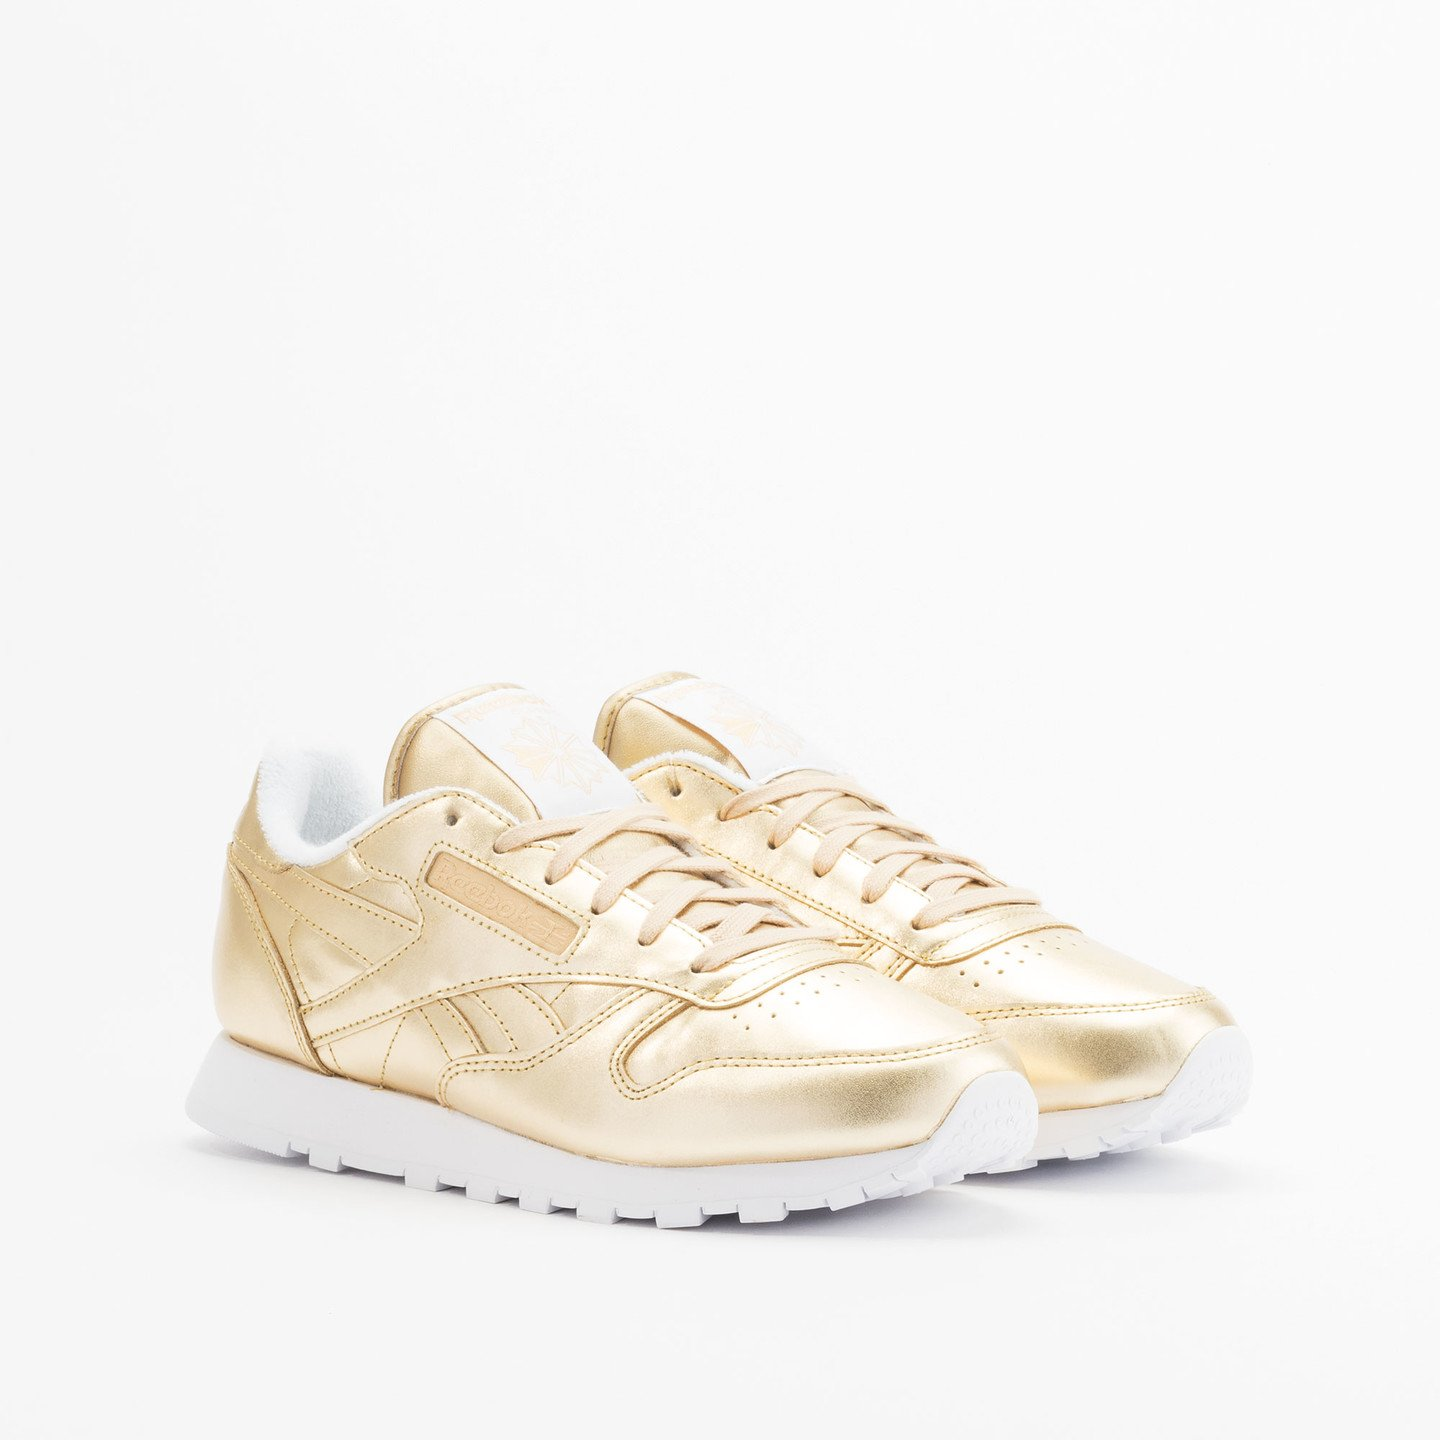 Reebok Classic Leather Spirit Sensation Gold / White V70668-39